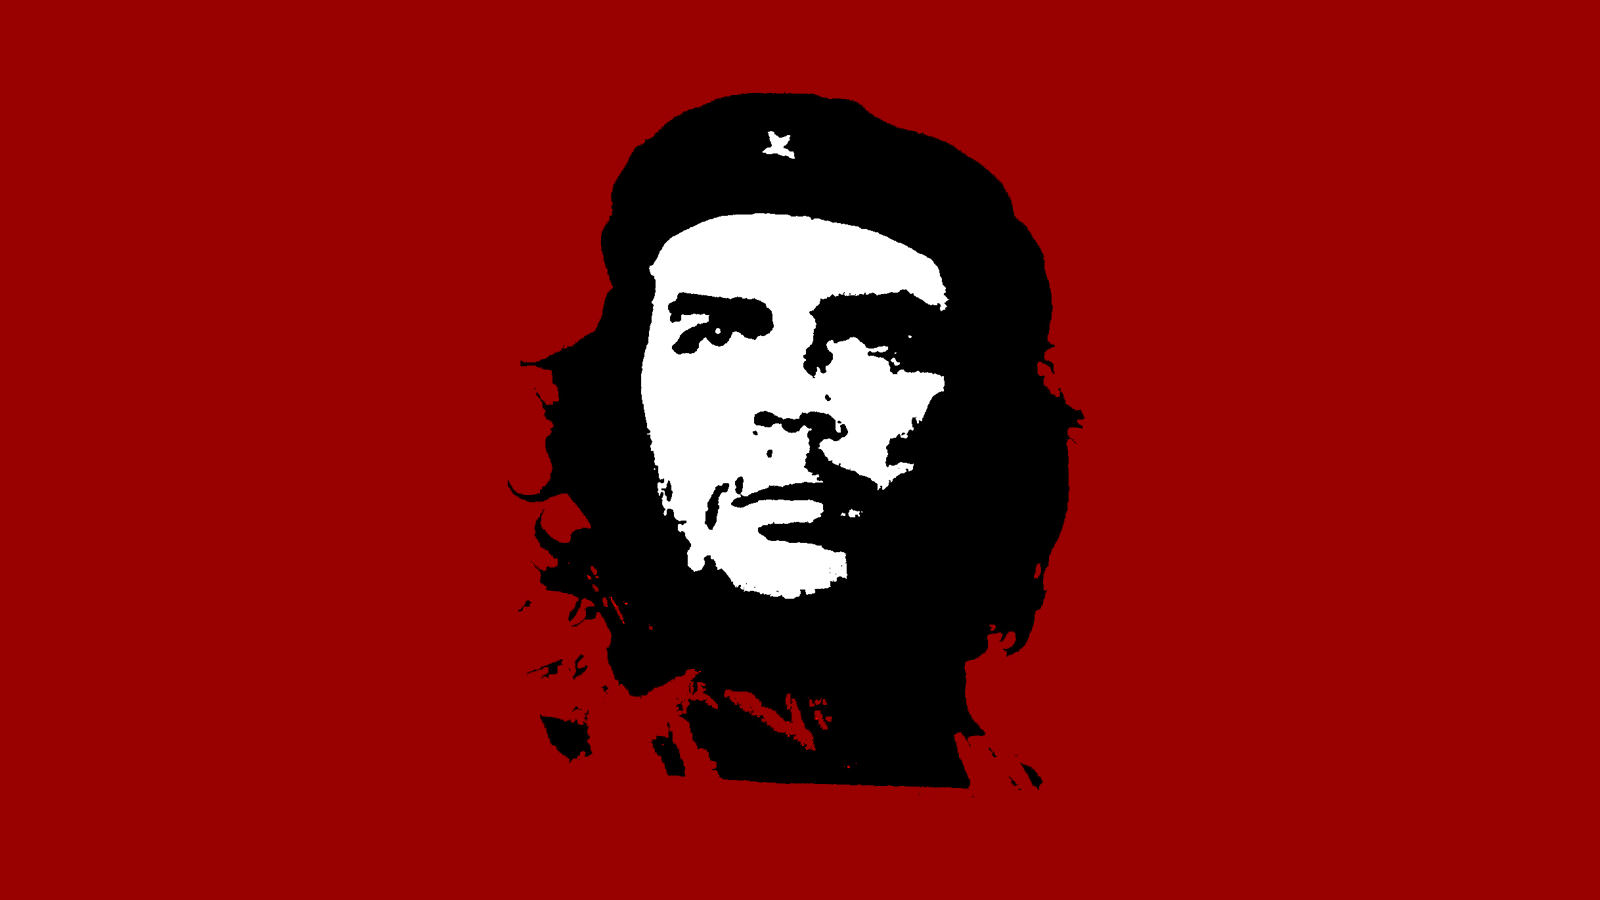 guevara and castro relationship problems